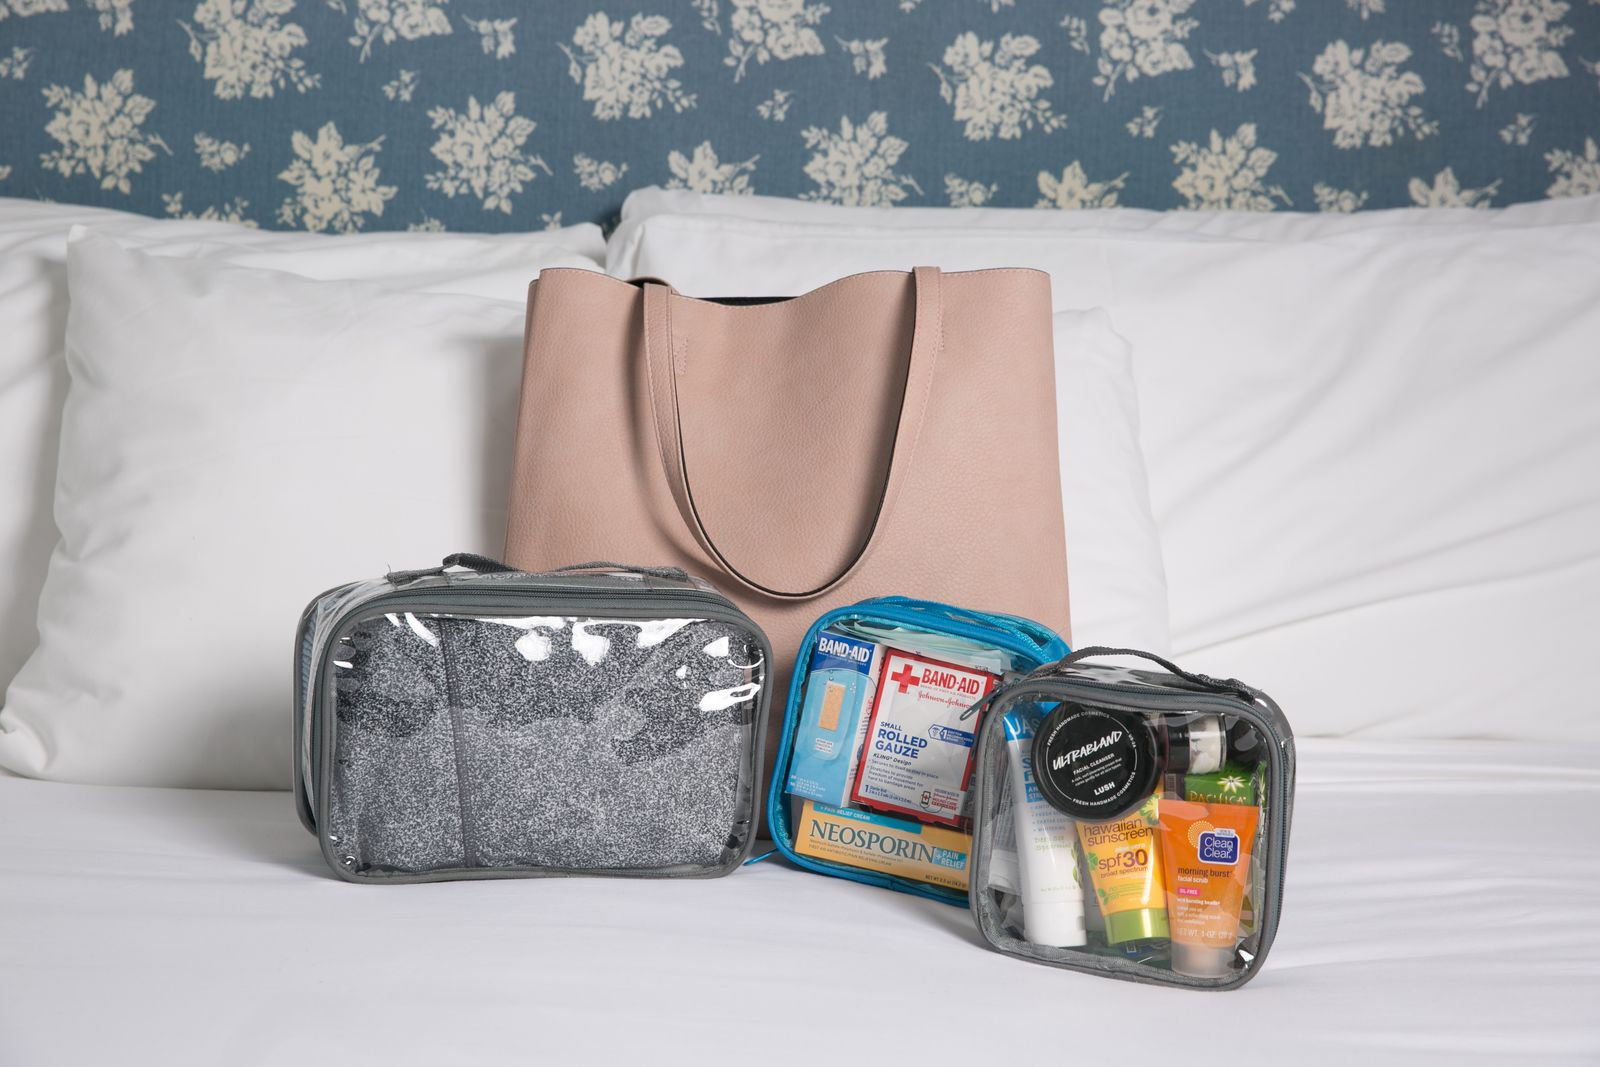 Tote bag and clear packing cubes on a bed